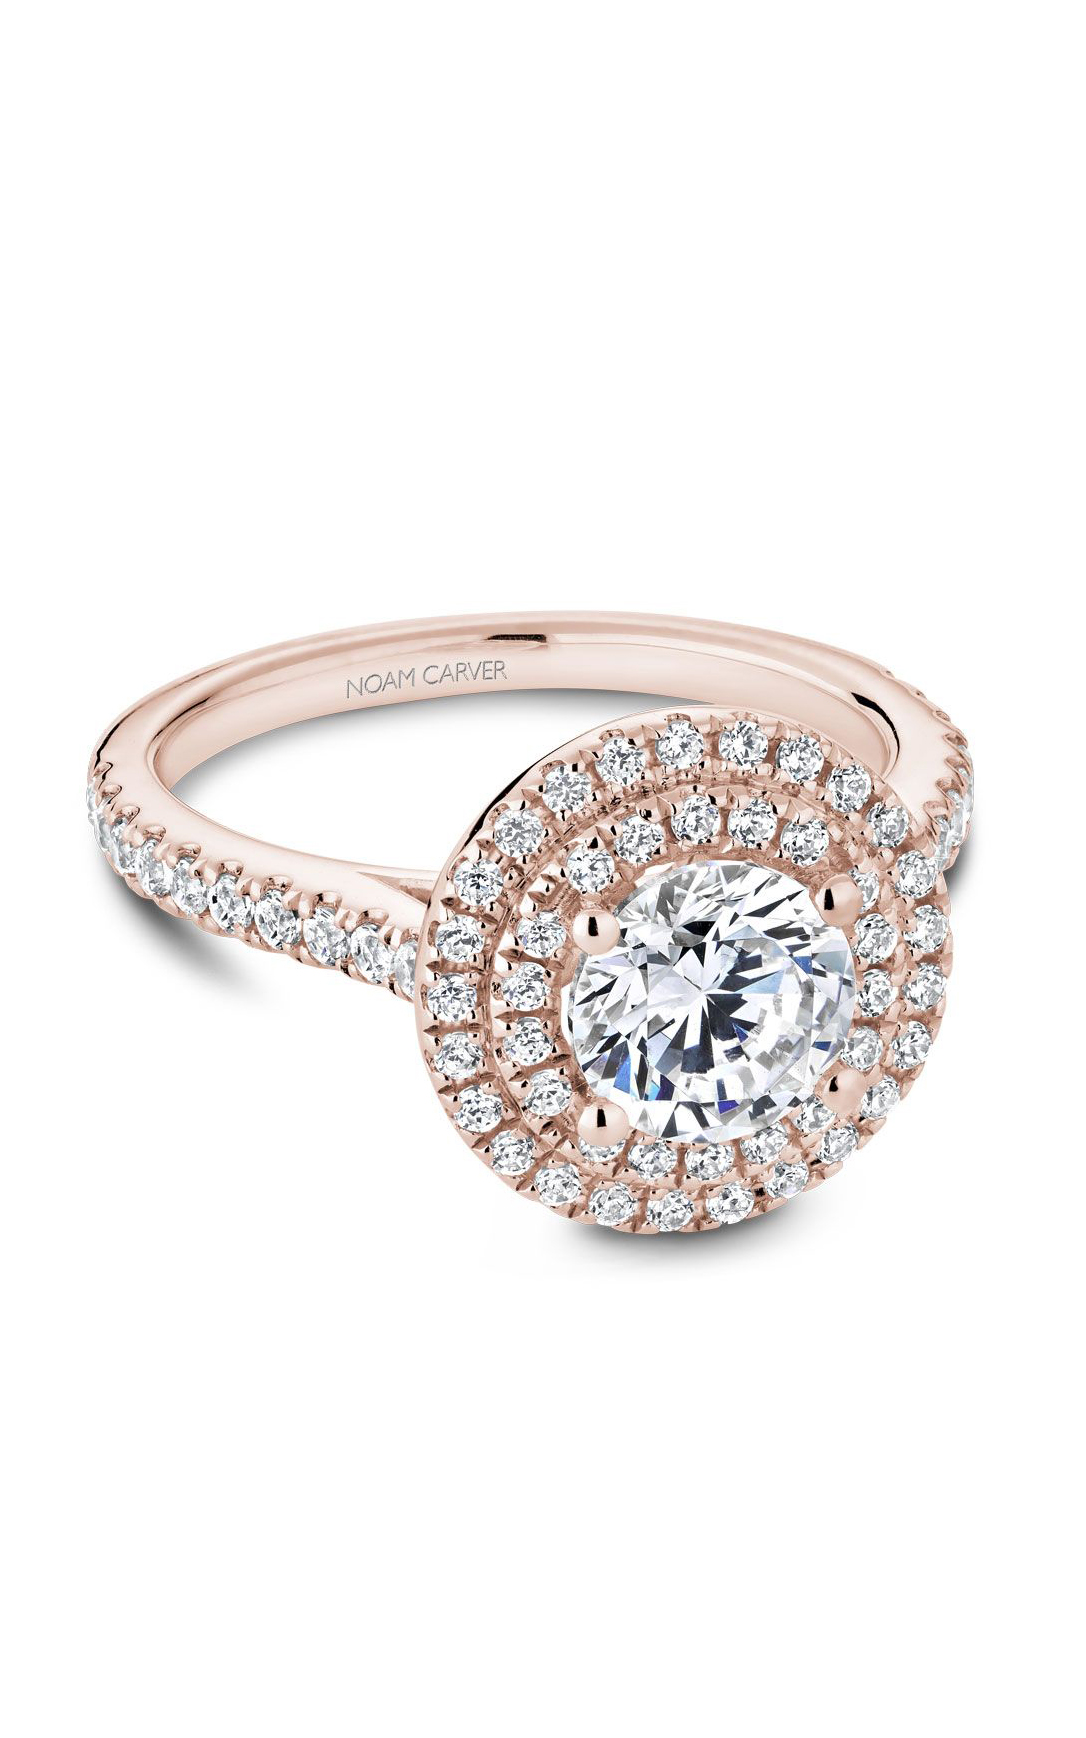 Noam Carver Halo Engagement Ring R051-01RM product image